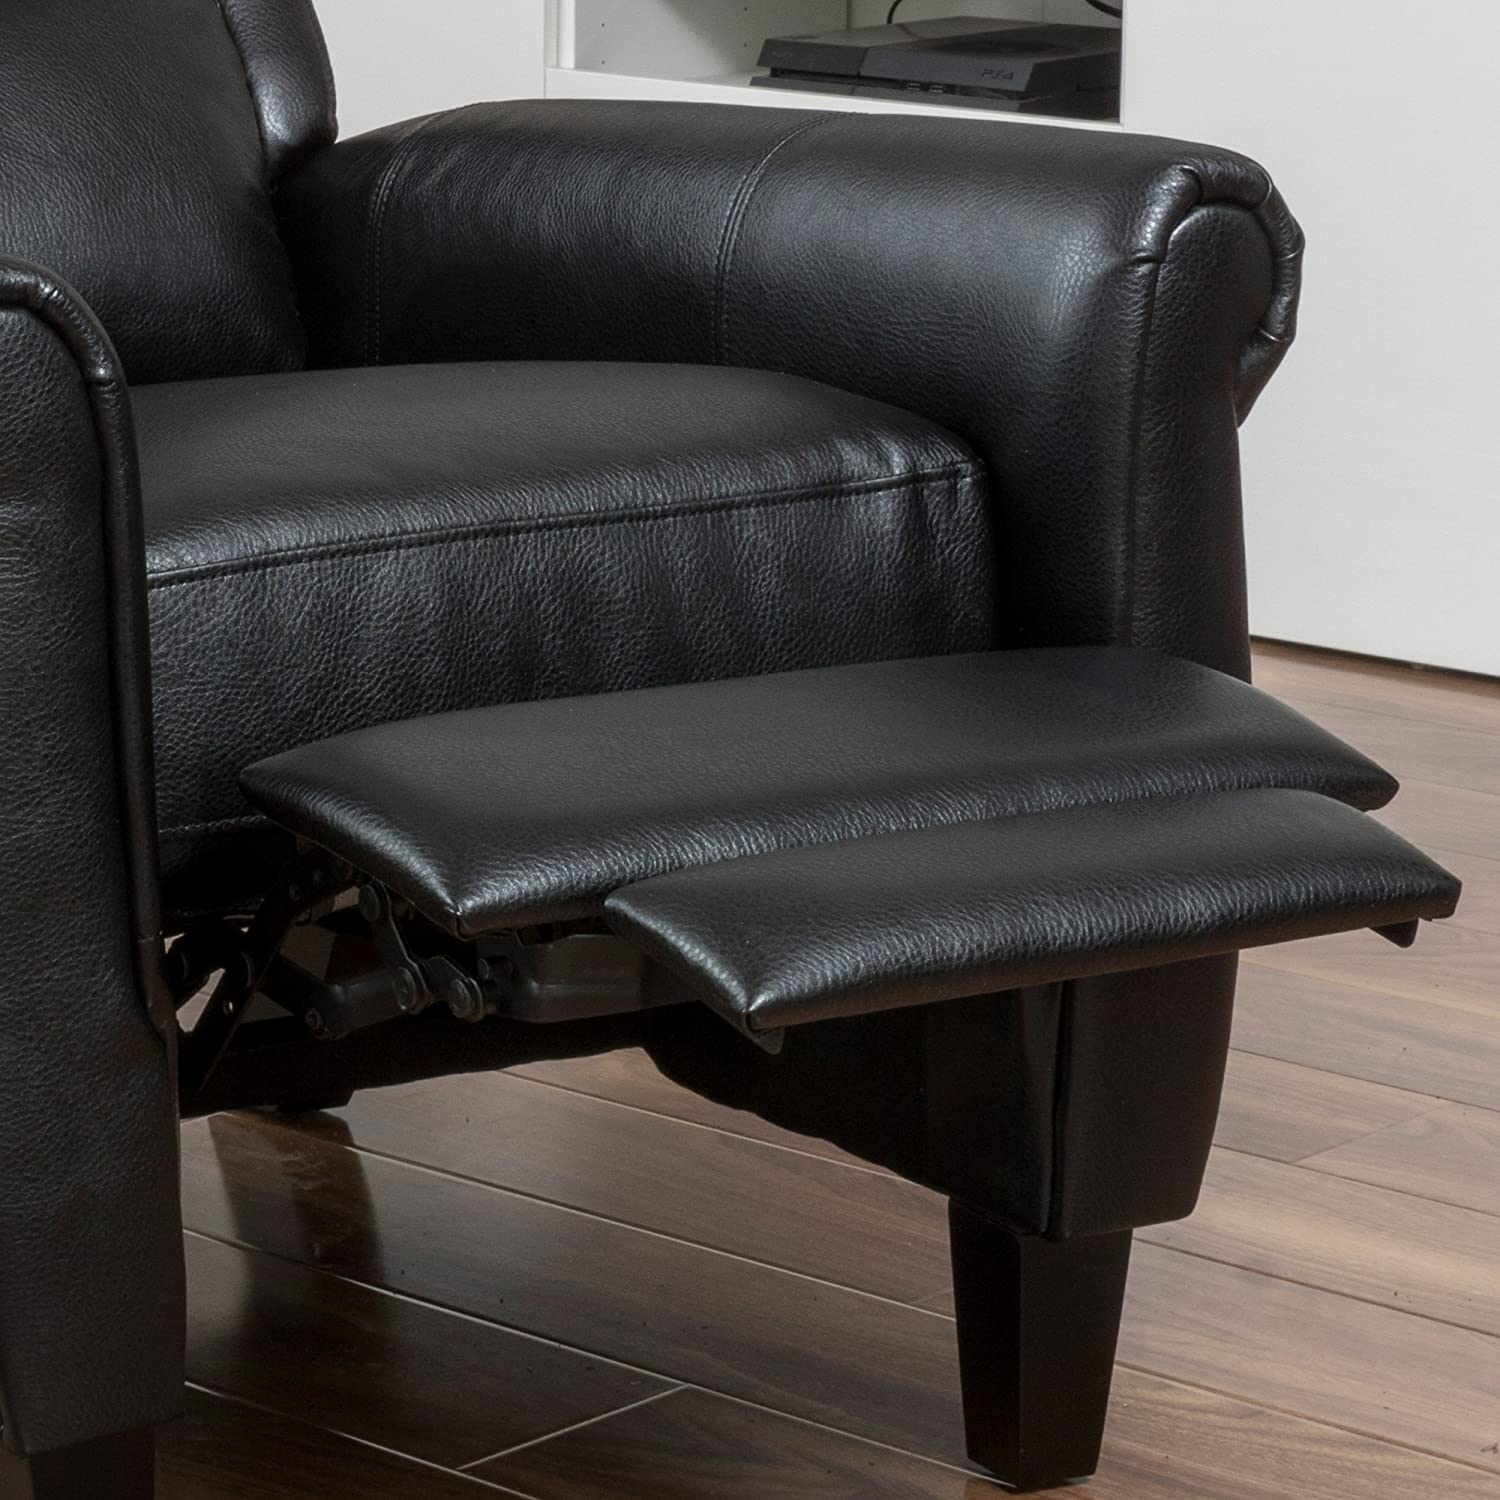 Amazon Lloyd Black Leather Recliner Club Chair Kitchen & Dining